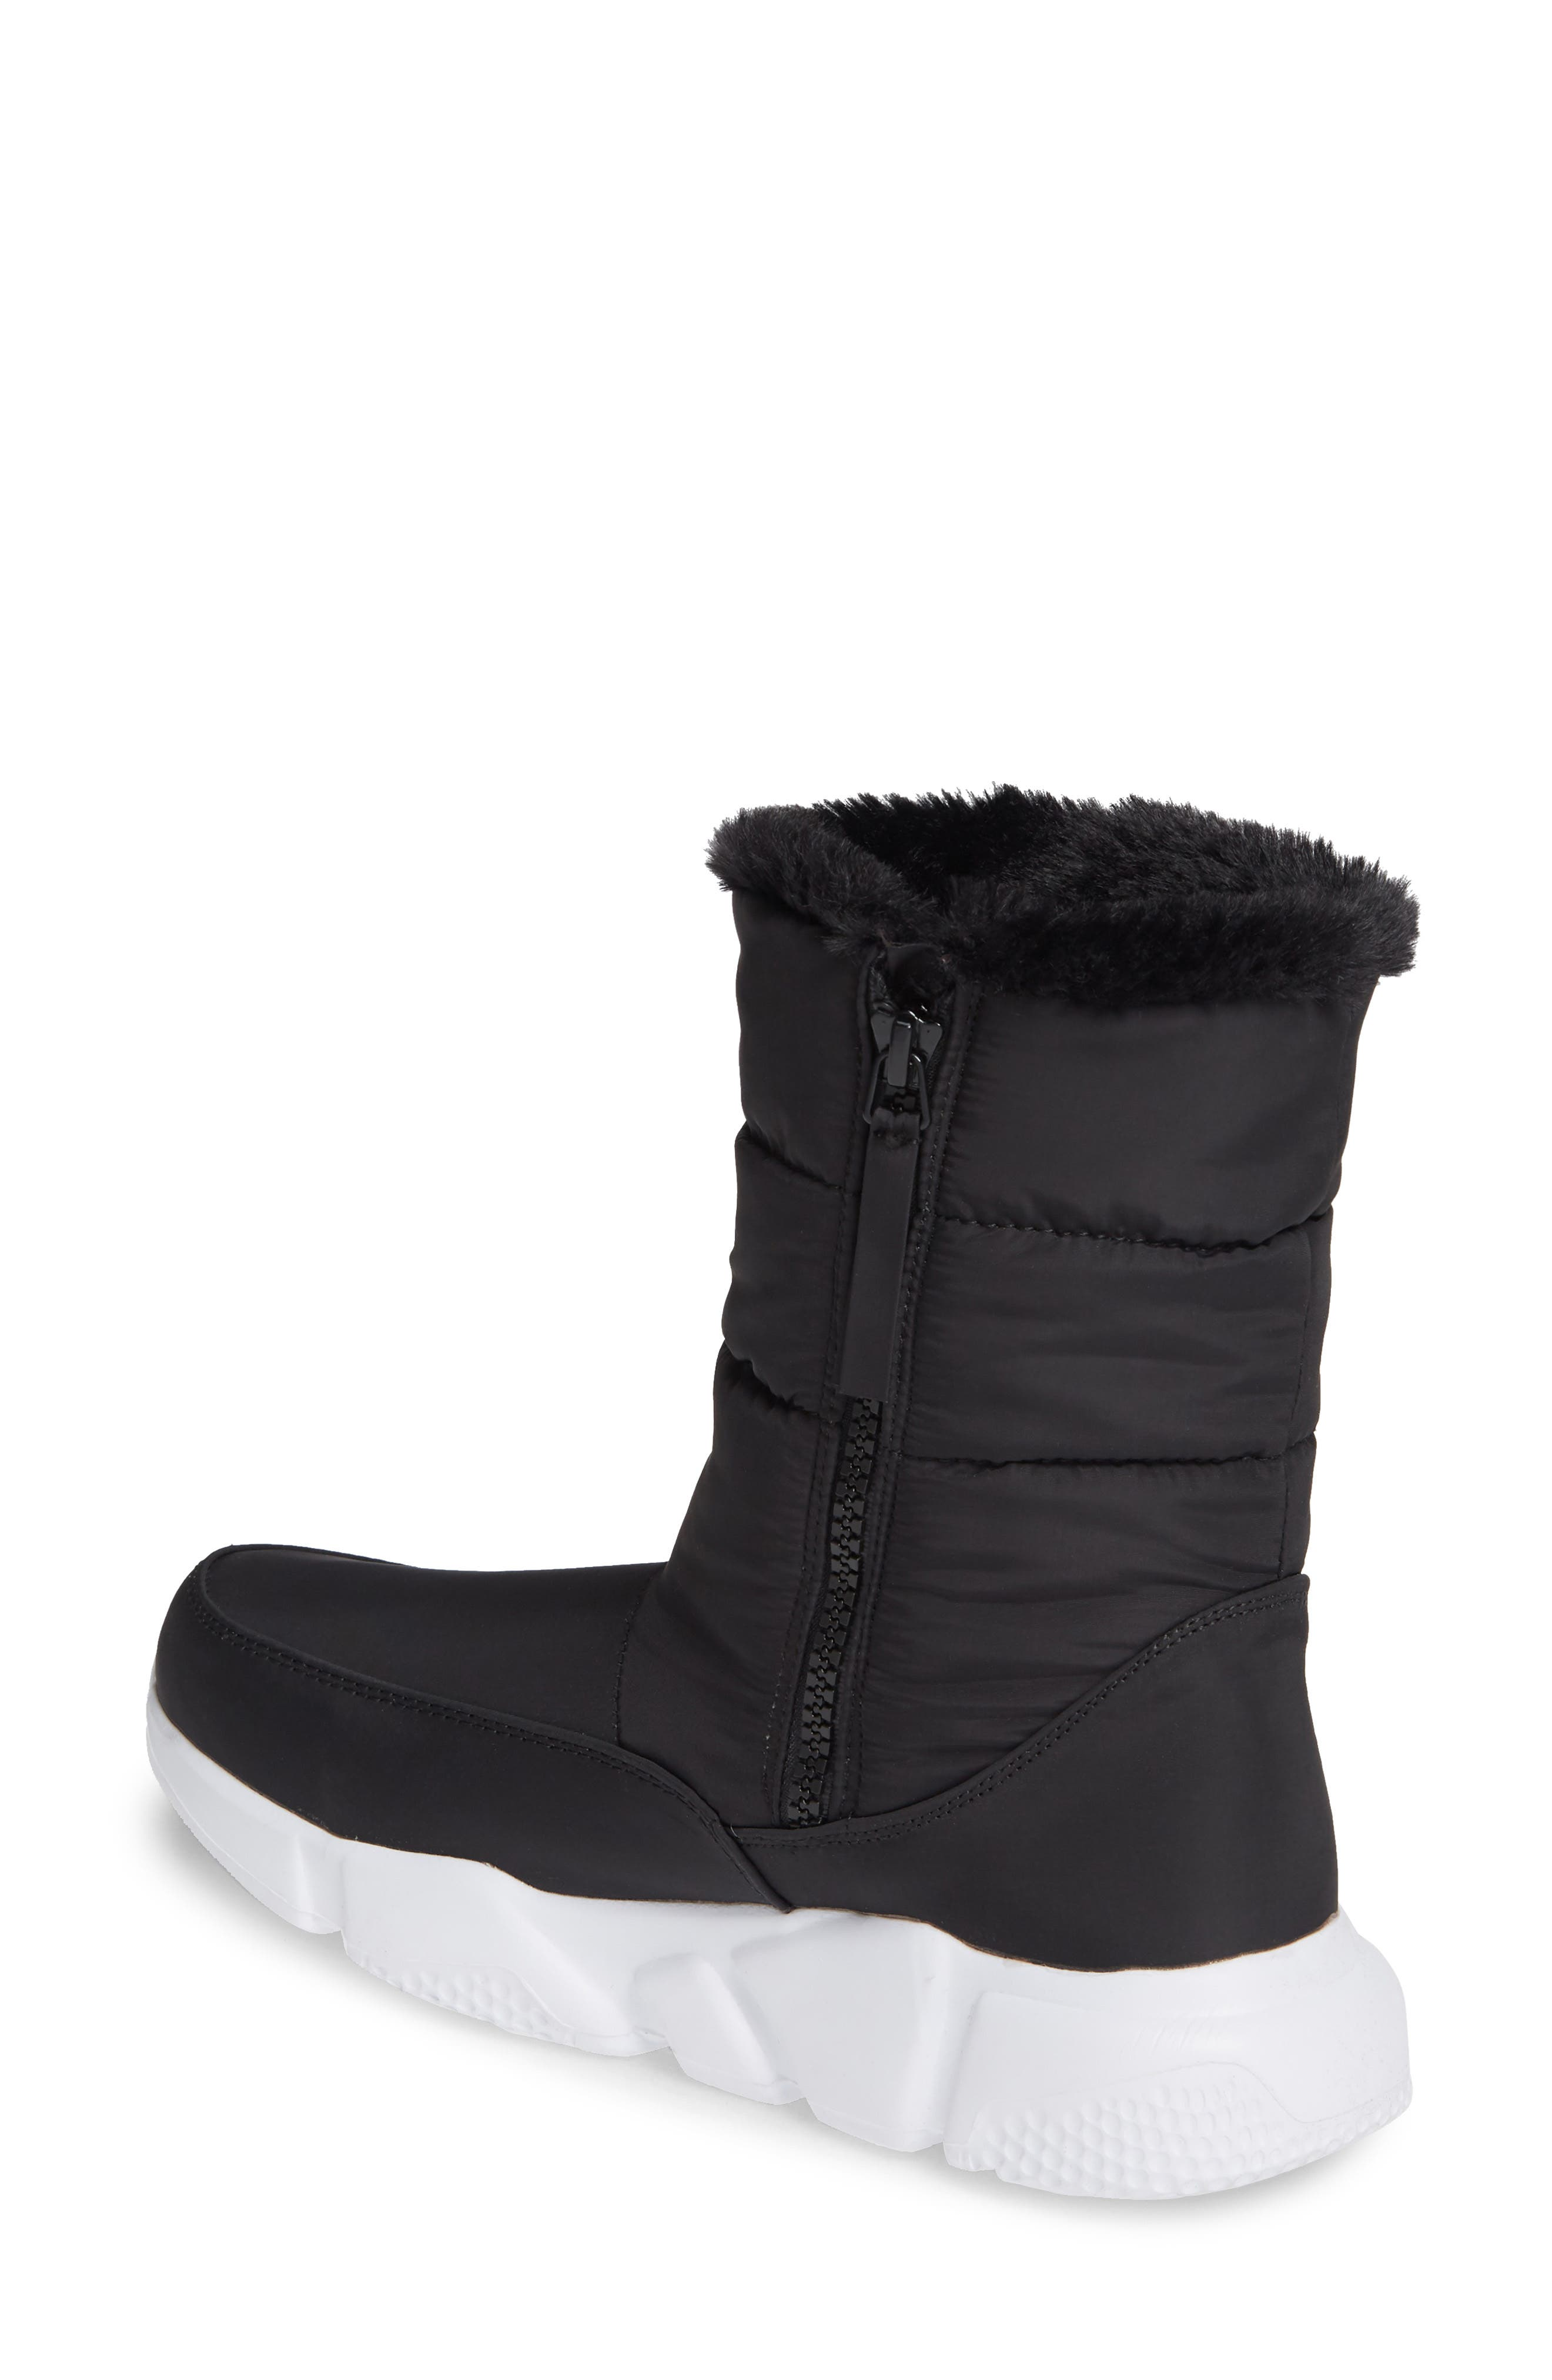 STEVE MADDEN,                             Snowday Faux Fur Lined Boot,                             Alternate thumbnail 2, color,                             BLACK